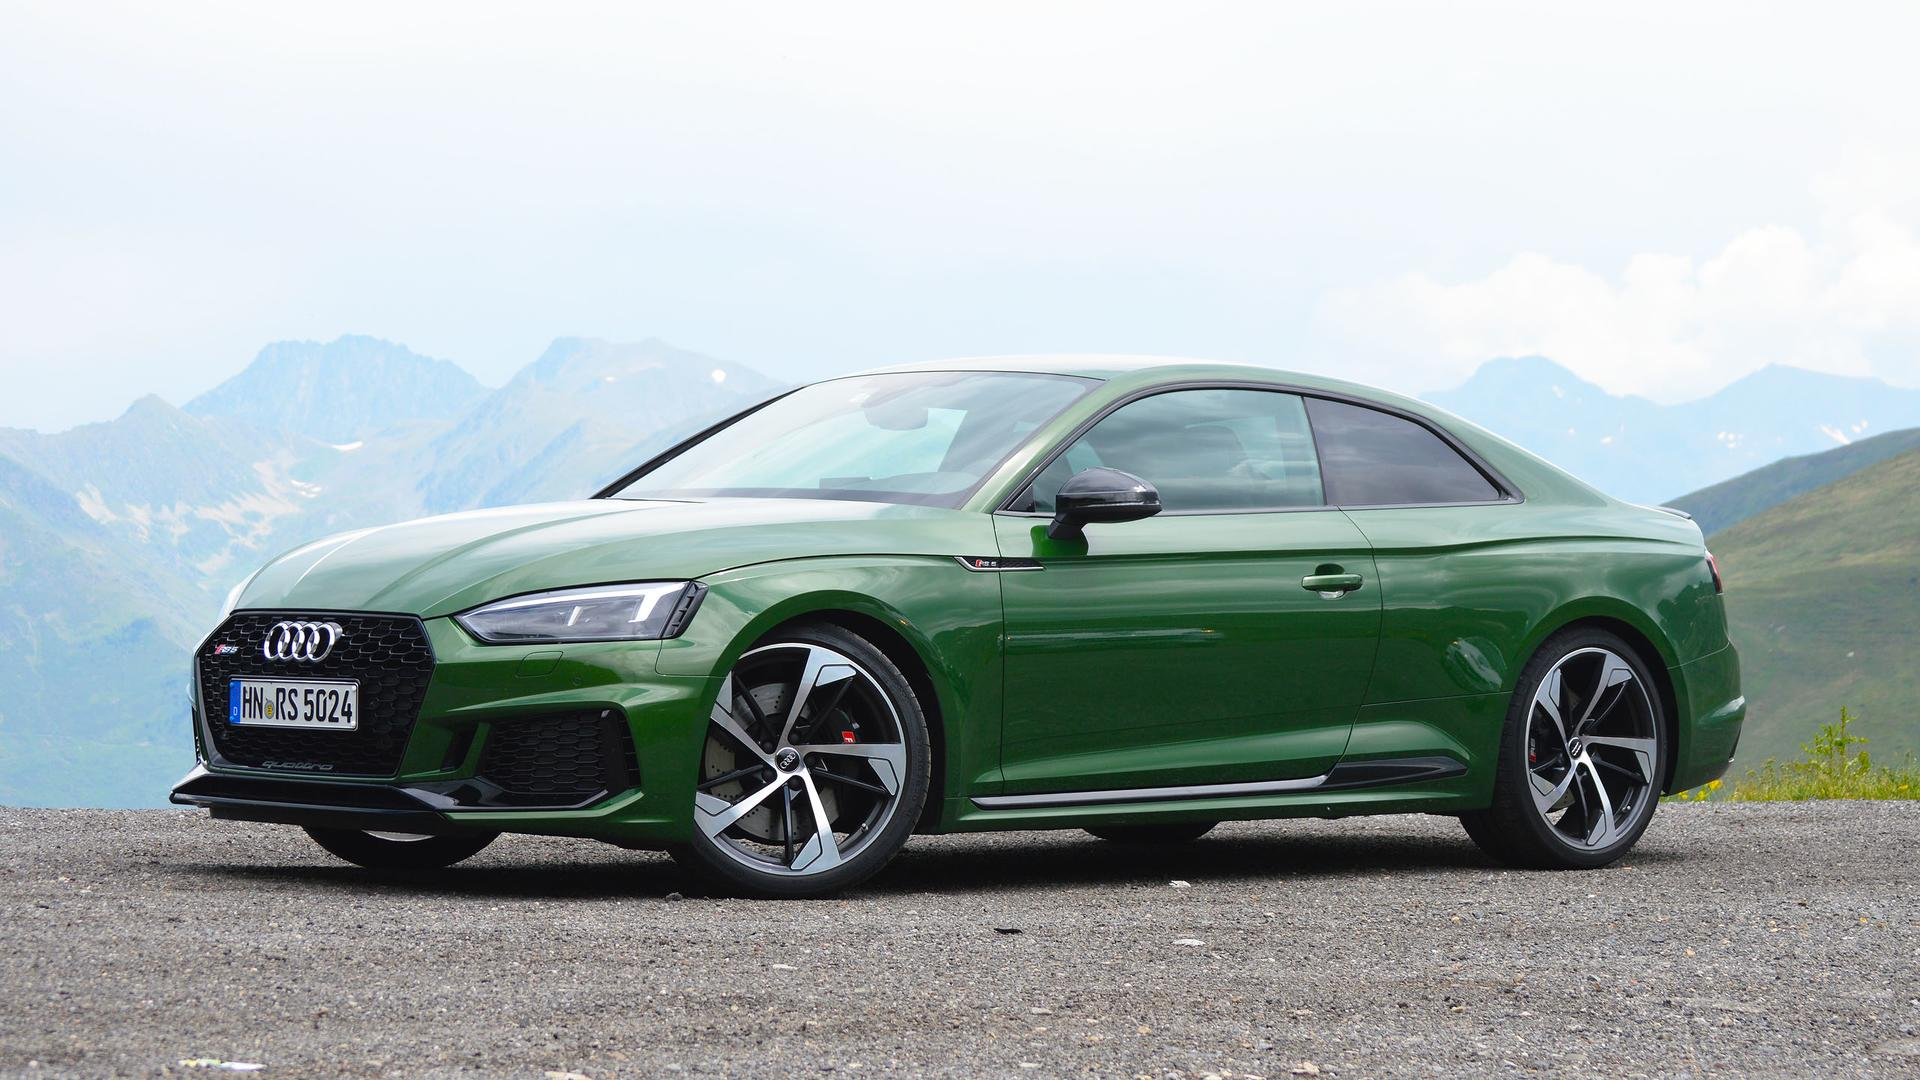 Audi Rs5 Sportback 4k 2019 Wallpapers: 2018 Audi RS5 Coupe First Drive: Fast On Every Road